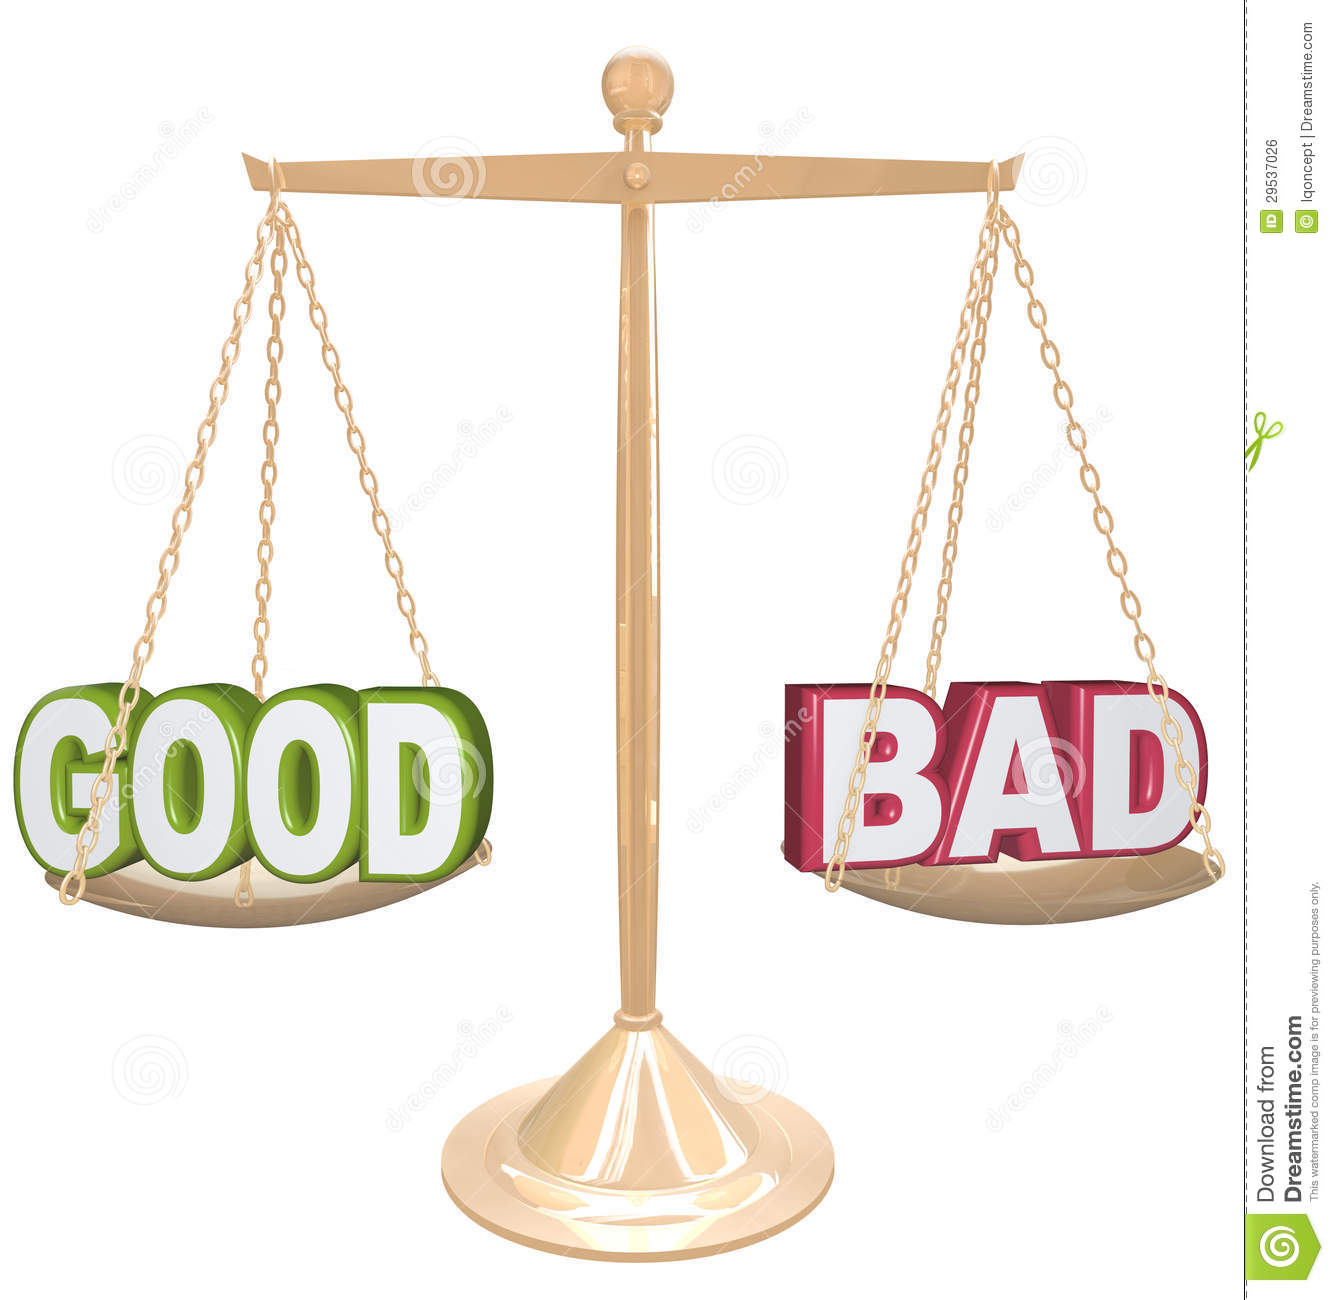 Good Vs Bad Words On Scale Weighing Positives Vs Negatives